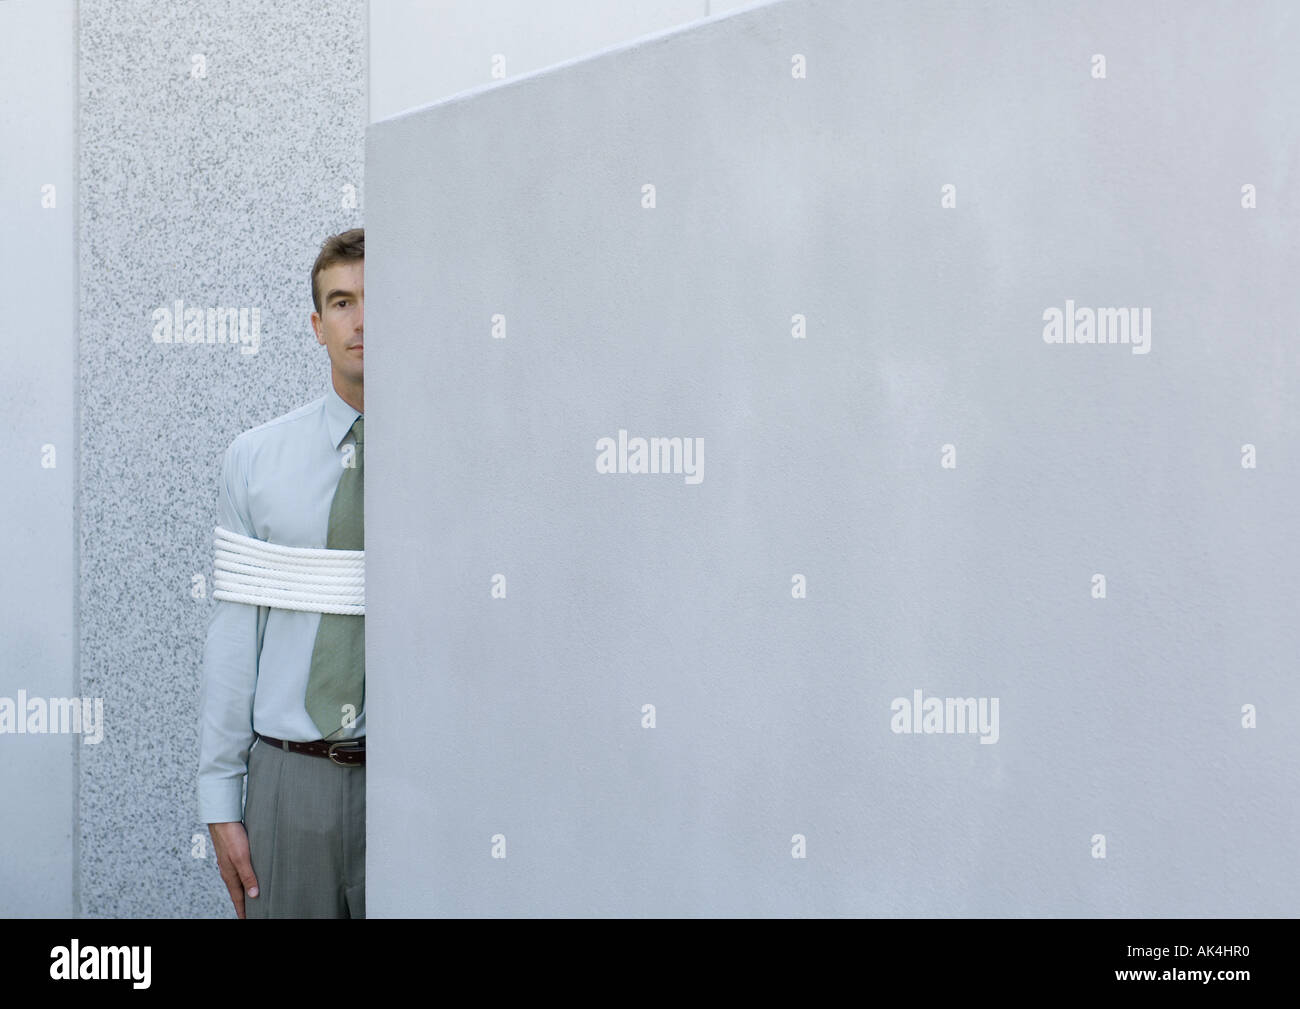 Businessman tied up, standing partially hidden behind wall - Stock Image